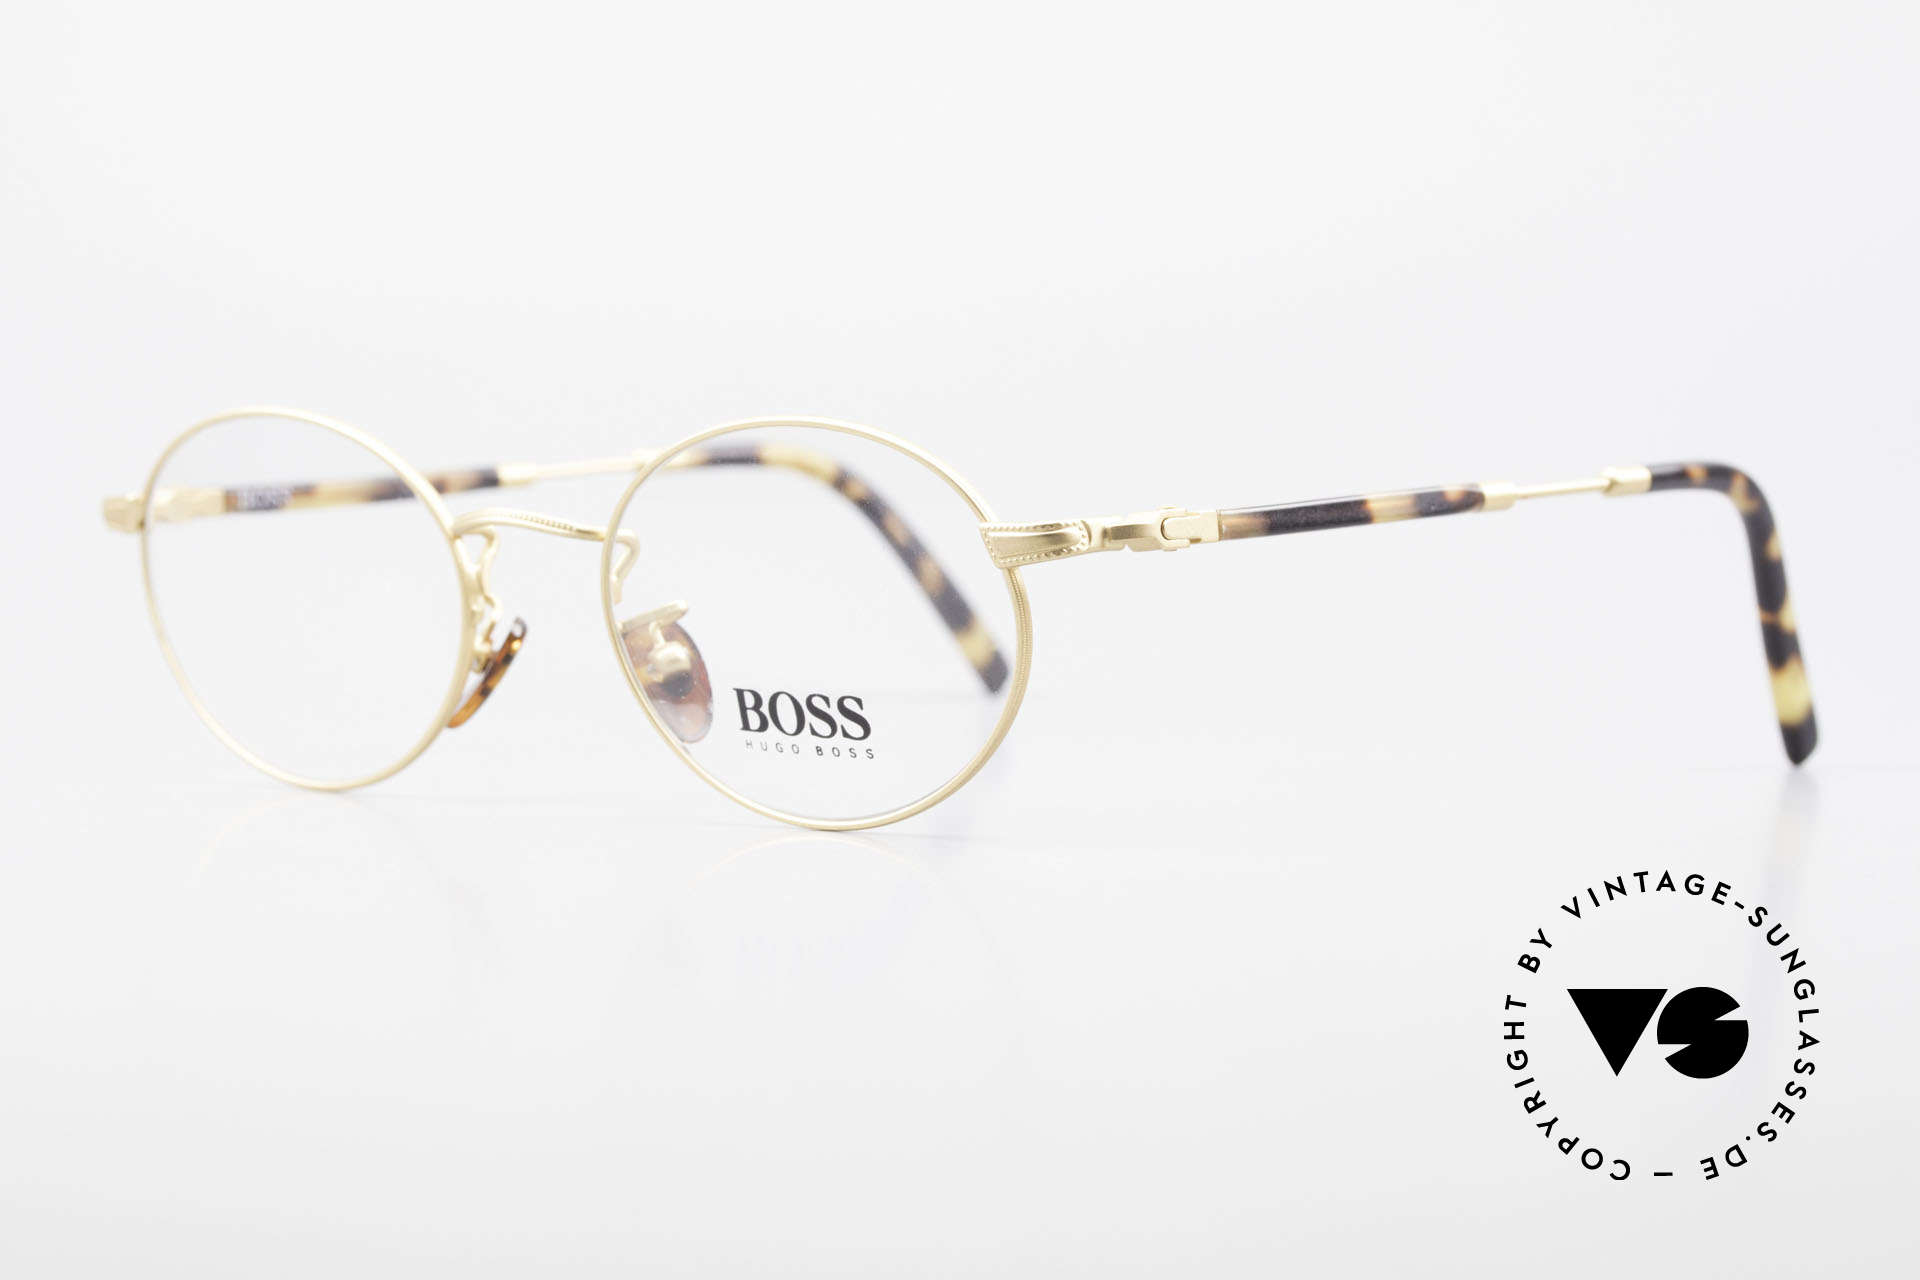 BOSS 5139 Oval Panto Eyeglass Frame, dressy color combination: tortoise / dulled gold, Made for Men and Women